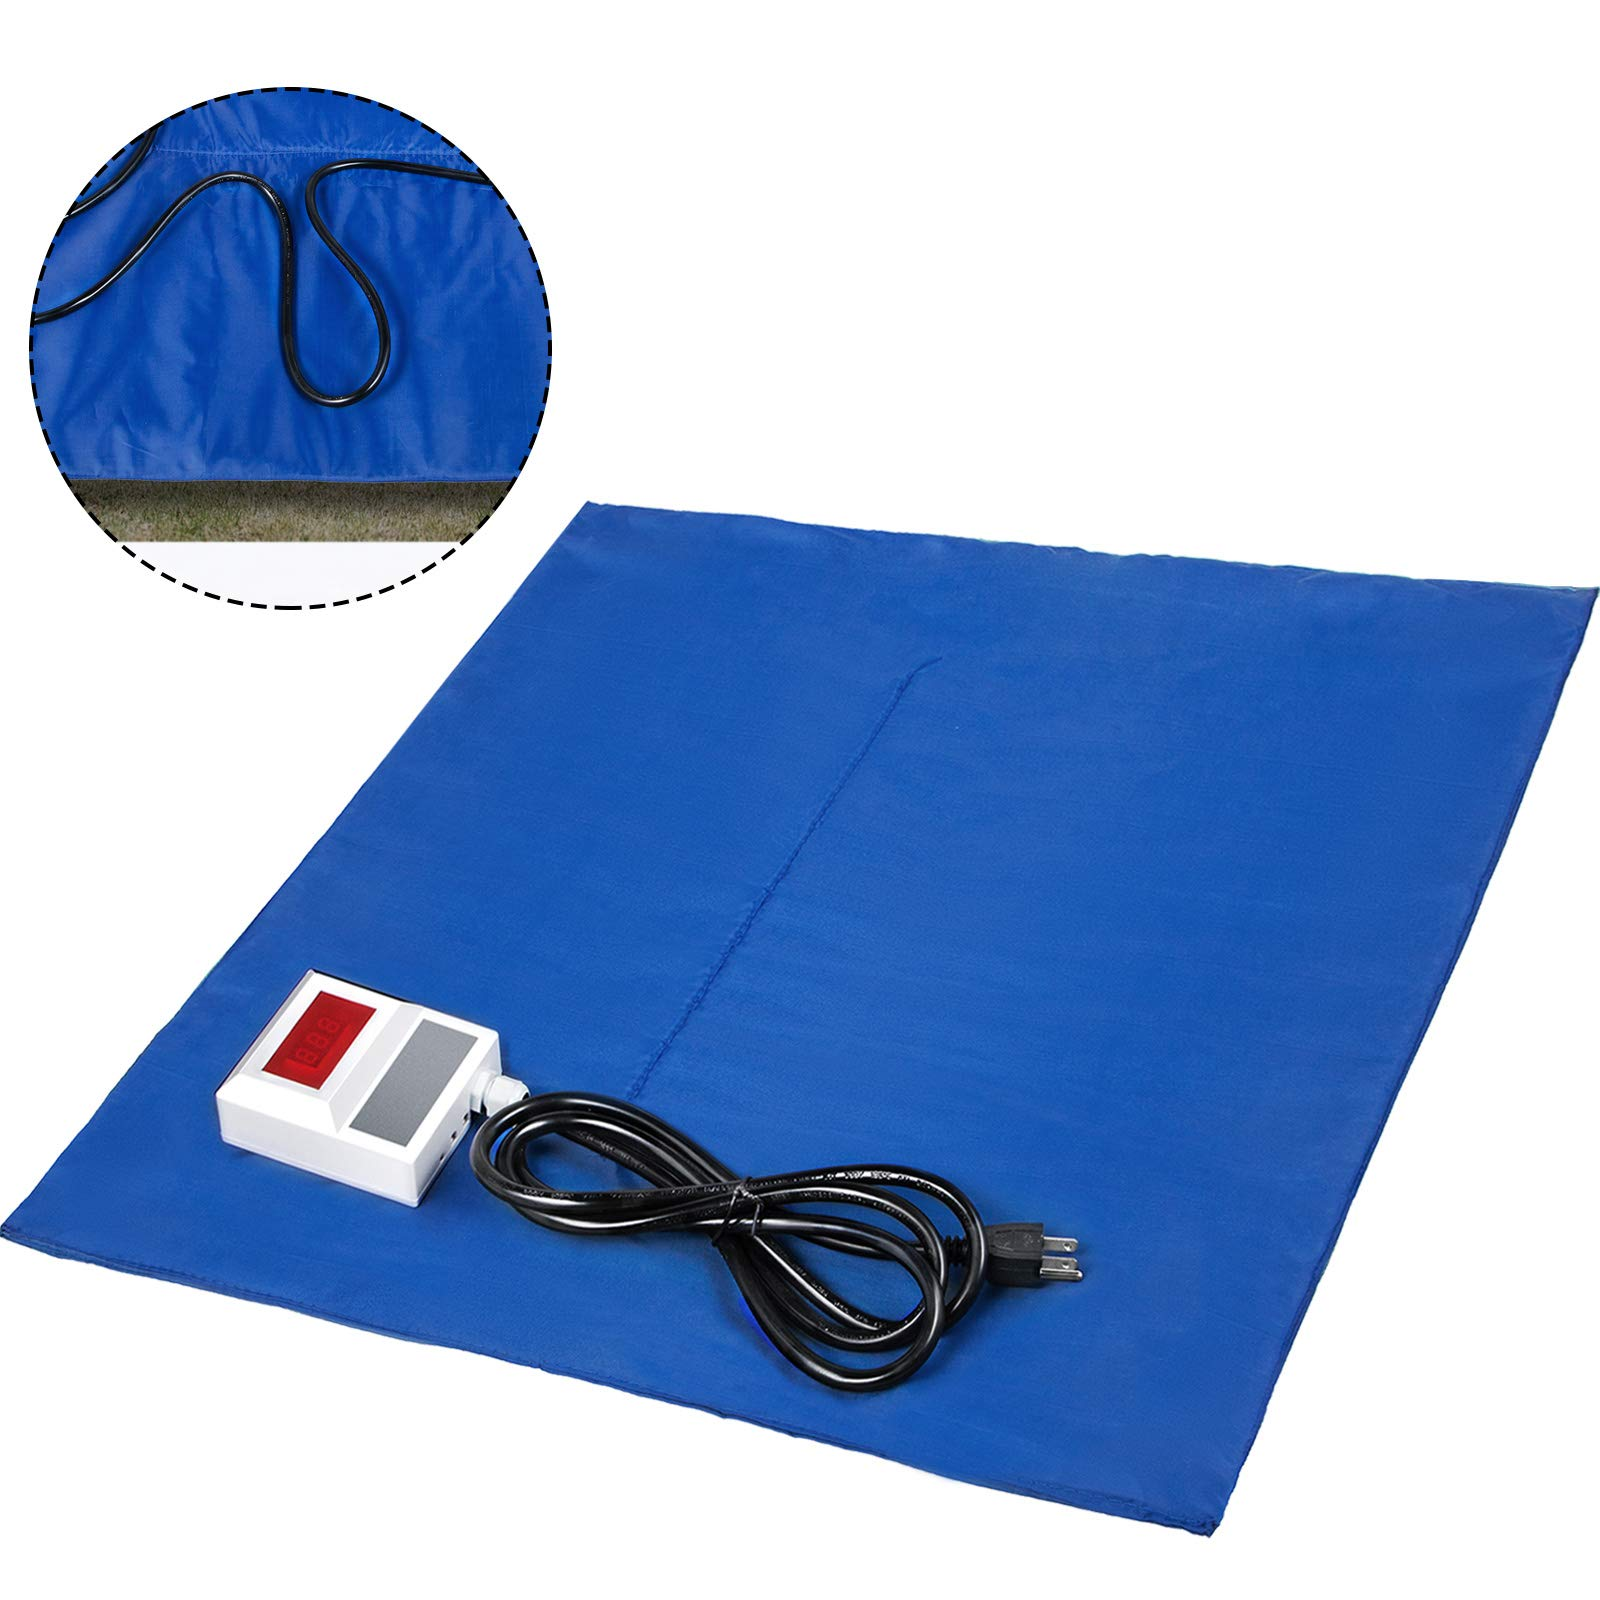 Bestauto Concrete Blanket Electric Concrete Curing Blanket Rapid Thaw Ground Thawing Blanket, Power Blanket Density Blanket Insulated Concrete Heater, 4' x 5' Finished Dimensions for Concrete Ground